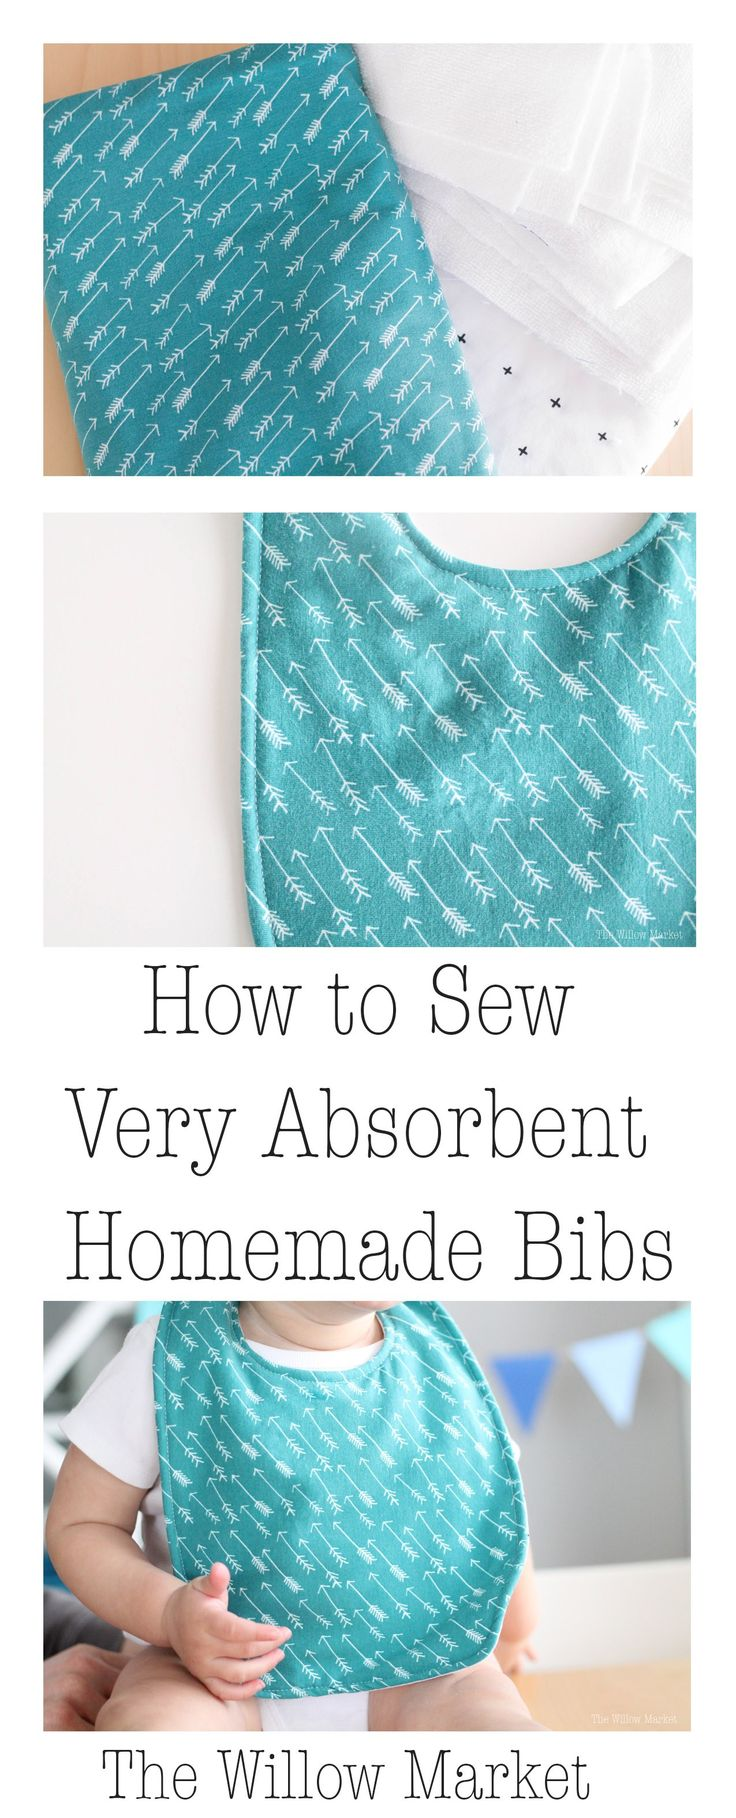 How to sew very absorbent homemade baby bibs. She uses jersey knit instead of the normal cotton or fleece.